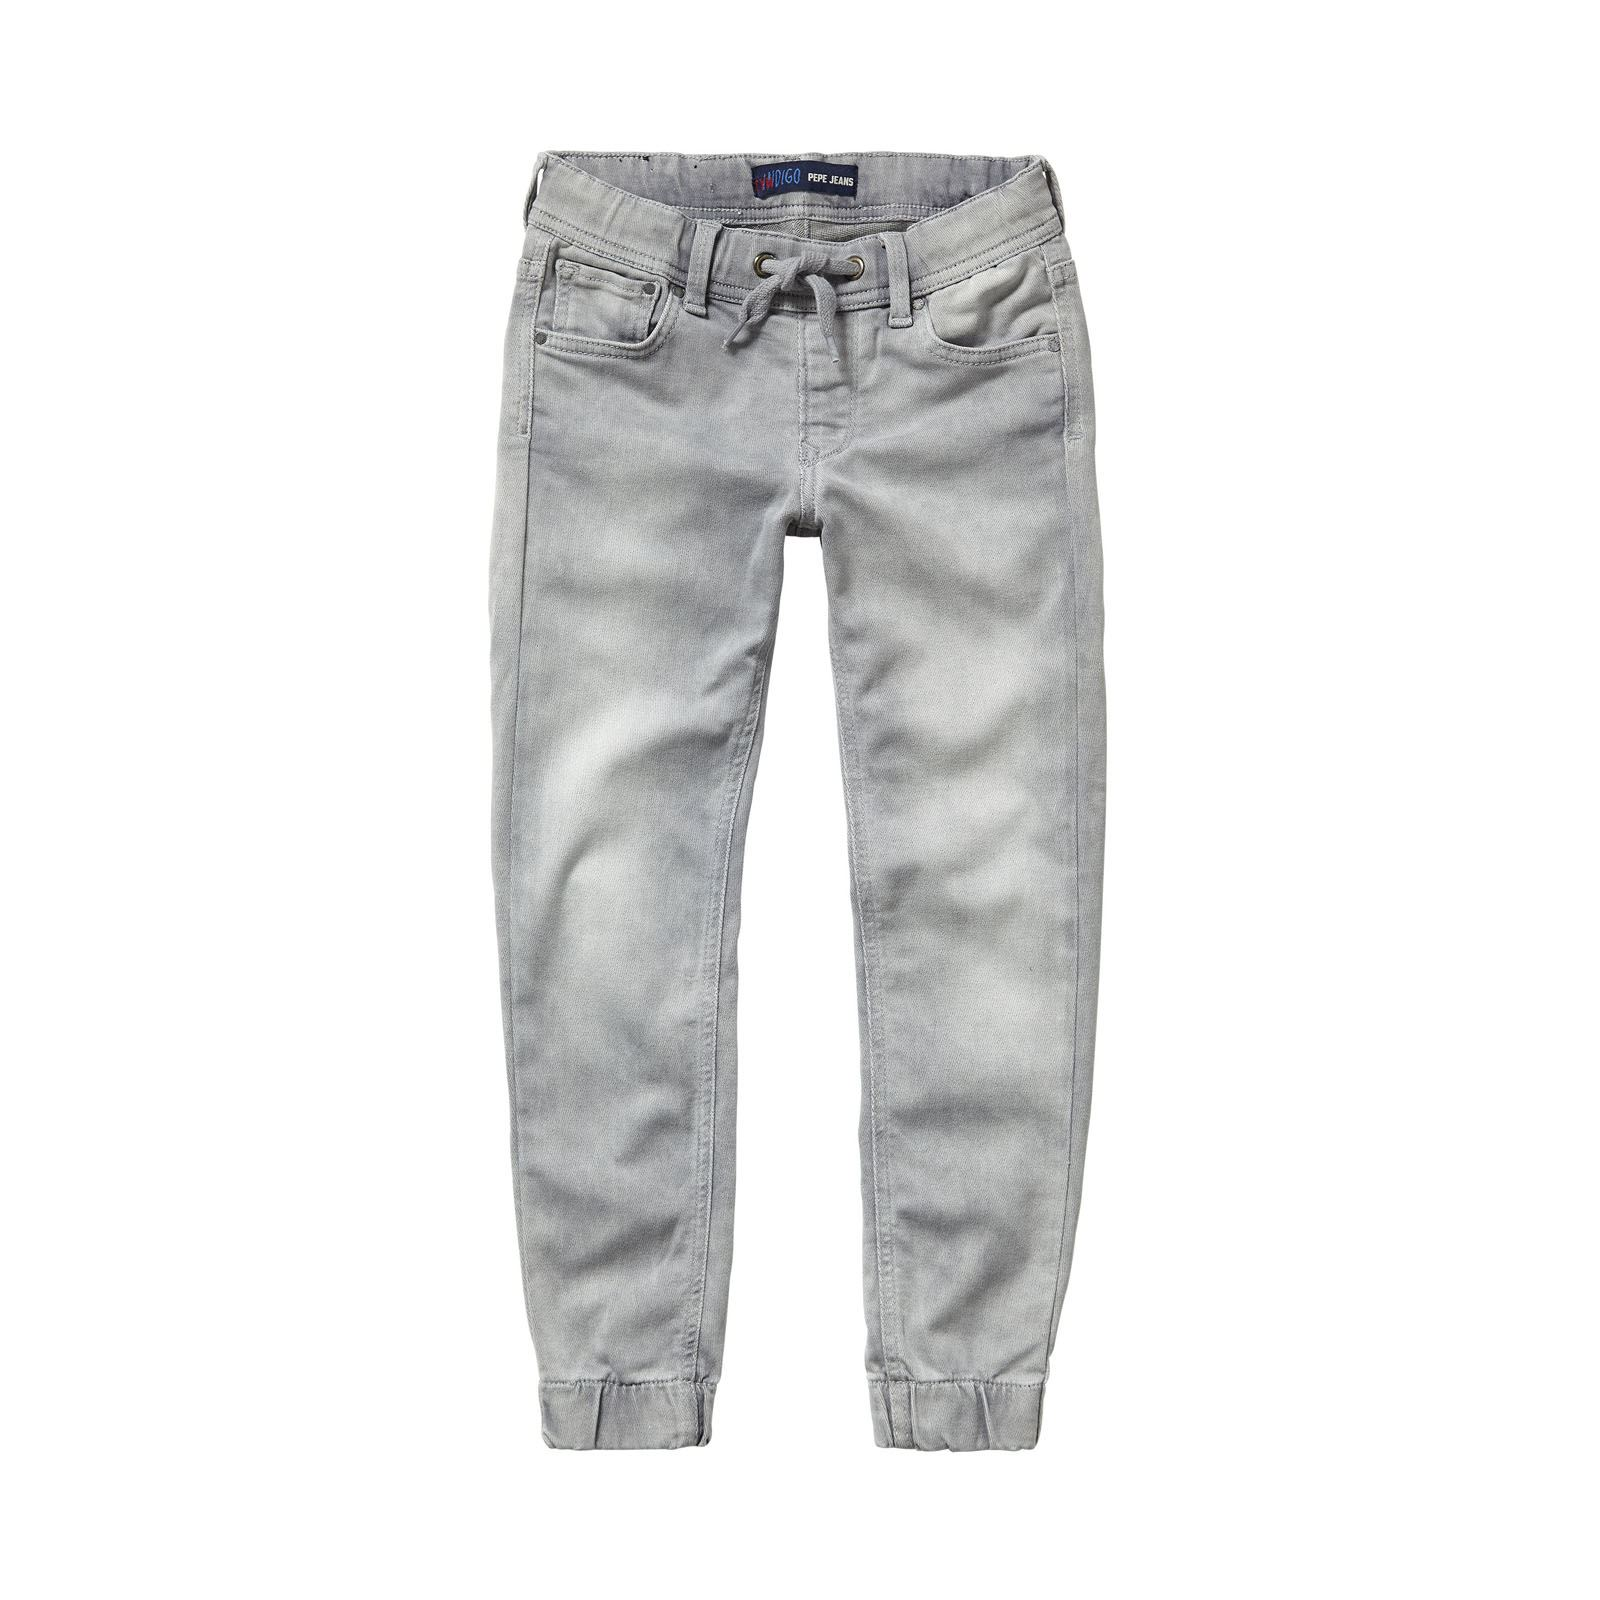 Pepe Jeans London Sprinter - Jean droit - denim bleu